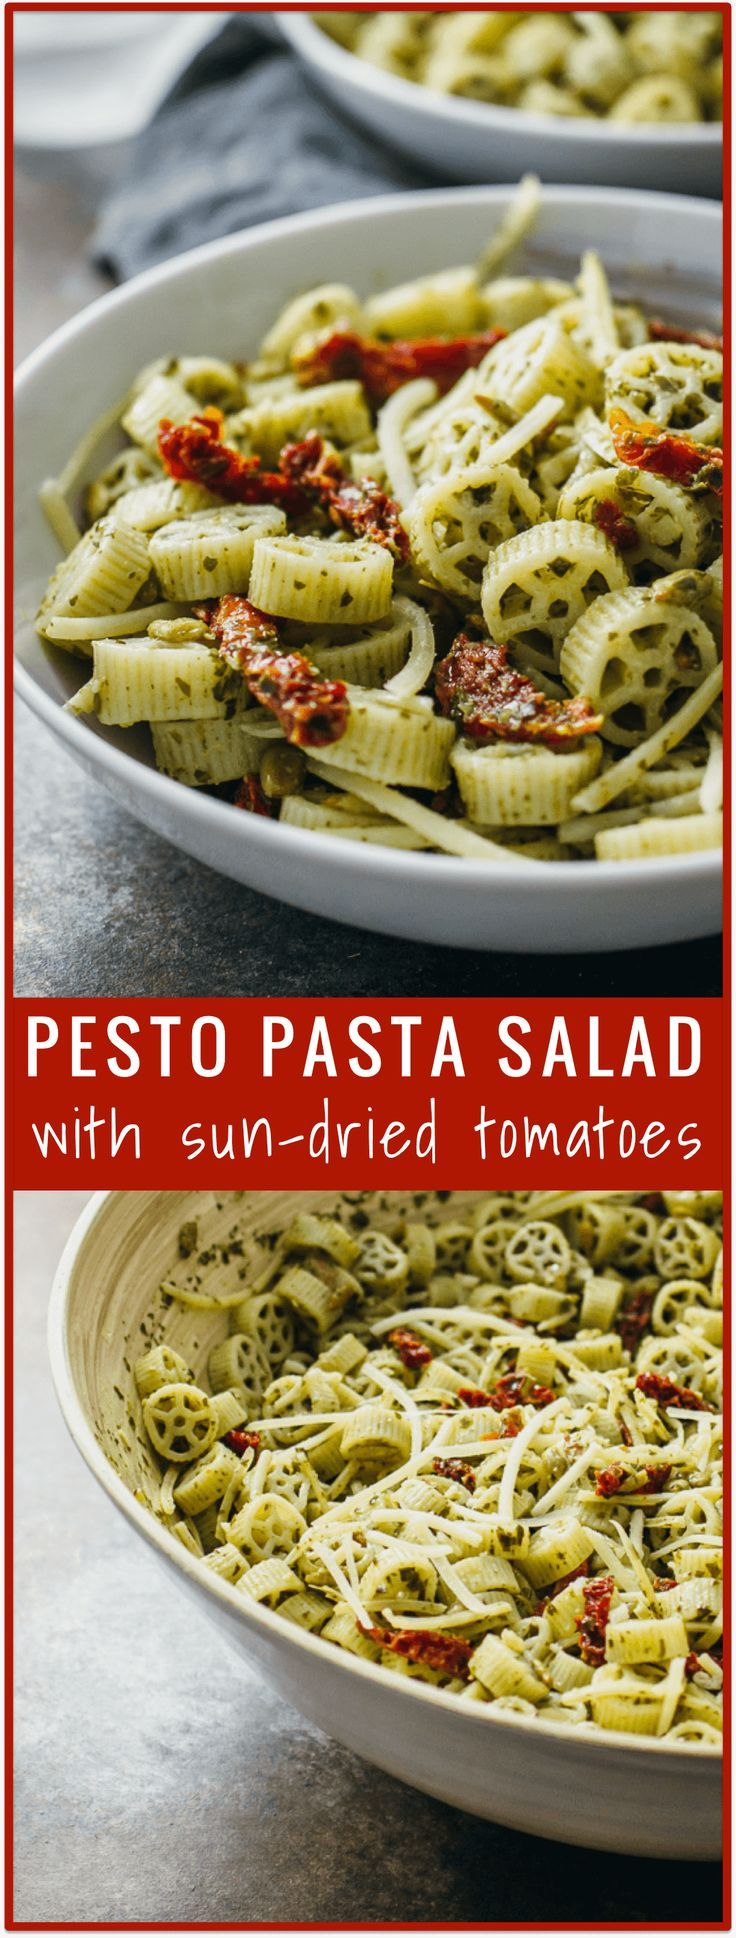 Pesto pasta salad with sun-dried tomatoes - Here's a 15-minute pesto pasta salad to bring to your next event. It's easy to throw together with only 5 ingredients in this recipe: pasta, pesto, sun-dried tomatoes, parmesan cheese, and sunflower seeds. This is a great cold dish to to bring to summer parties. - http://savorytooth.com